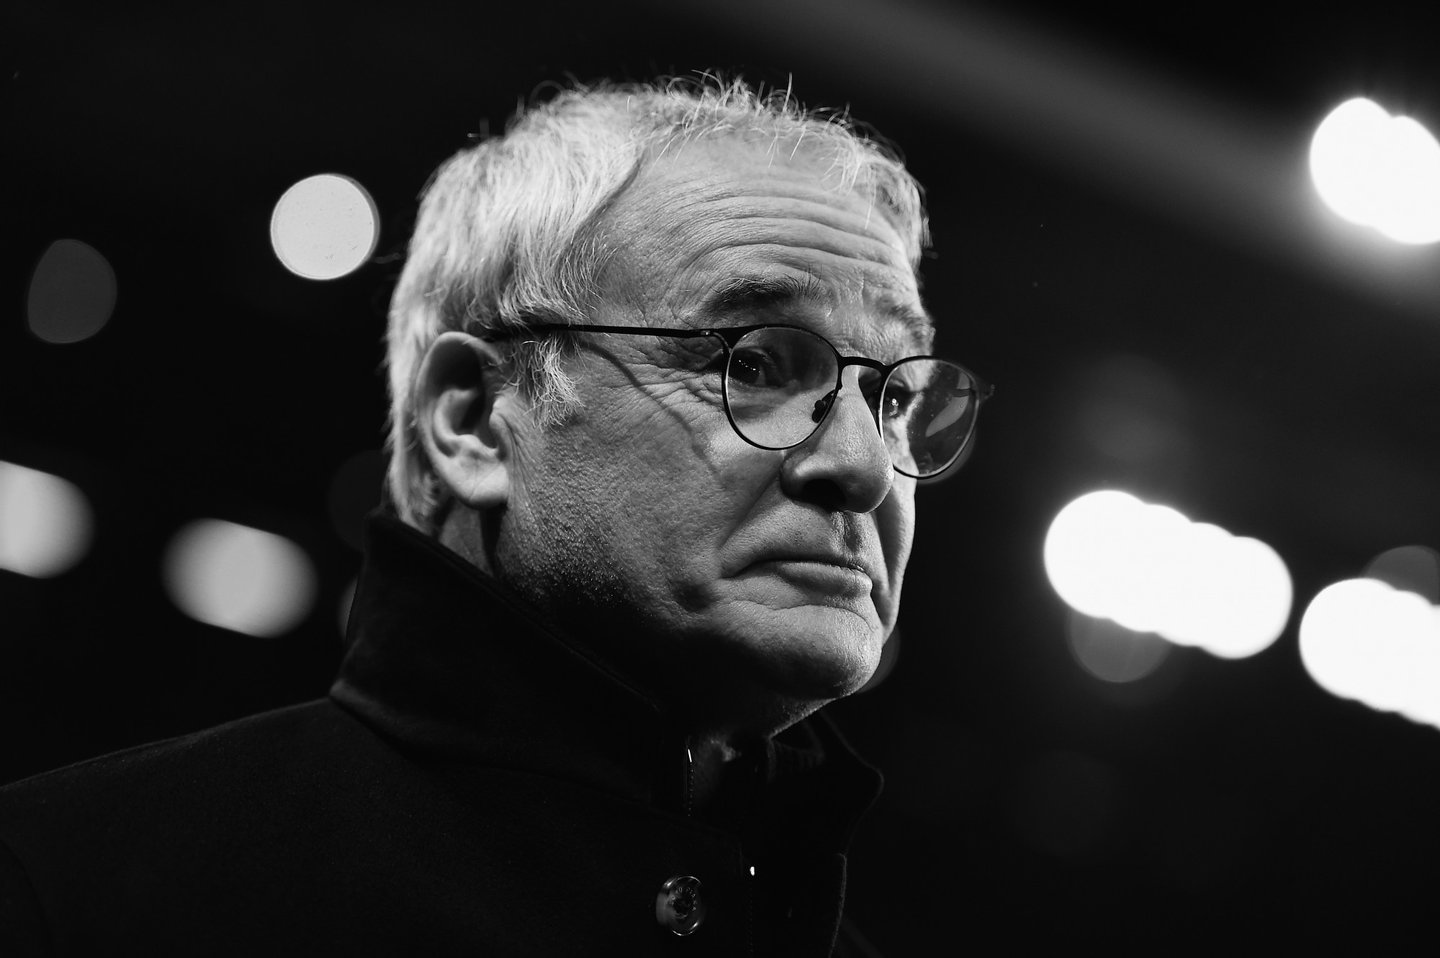 BIRMINGHAM, ENGLAND - JANUARY 16: (Editors notes: This image has been converted to black and white.) Claudio Ranieri of Leicester City looks on during the Barclays Premier League match between Aston Villa and Leicester City at The King Power Stadium on January 16, 2016 in Birmingham, England. (Photo by Laurence Griffiths/Getty Images)